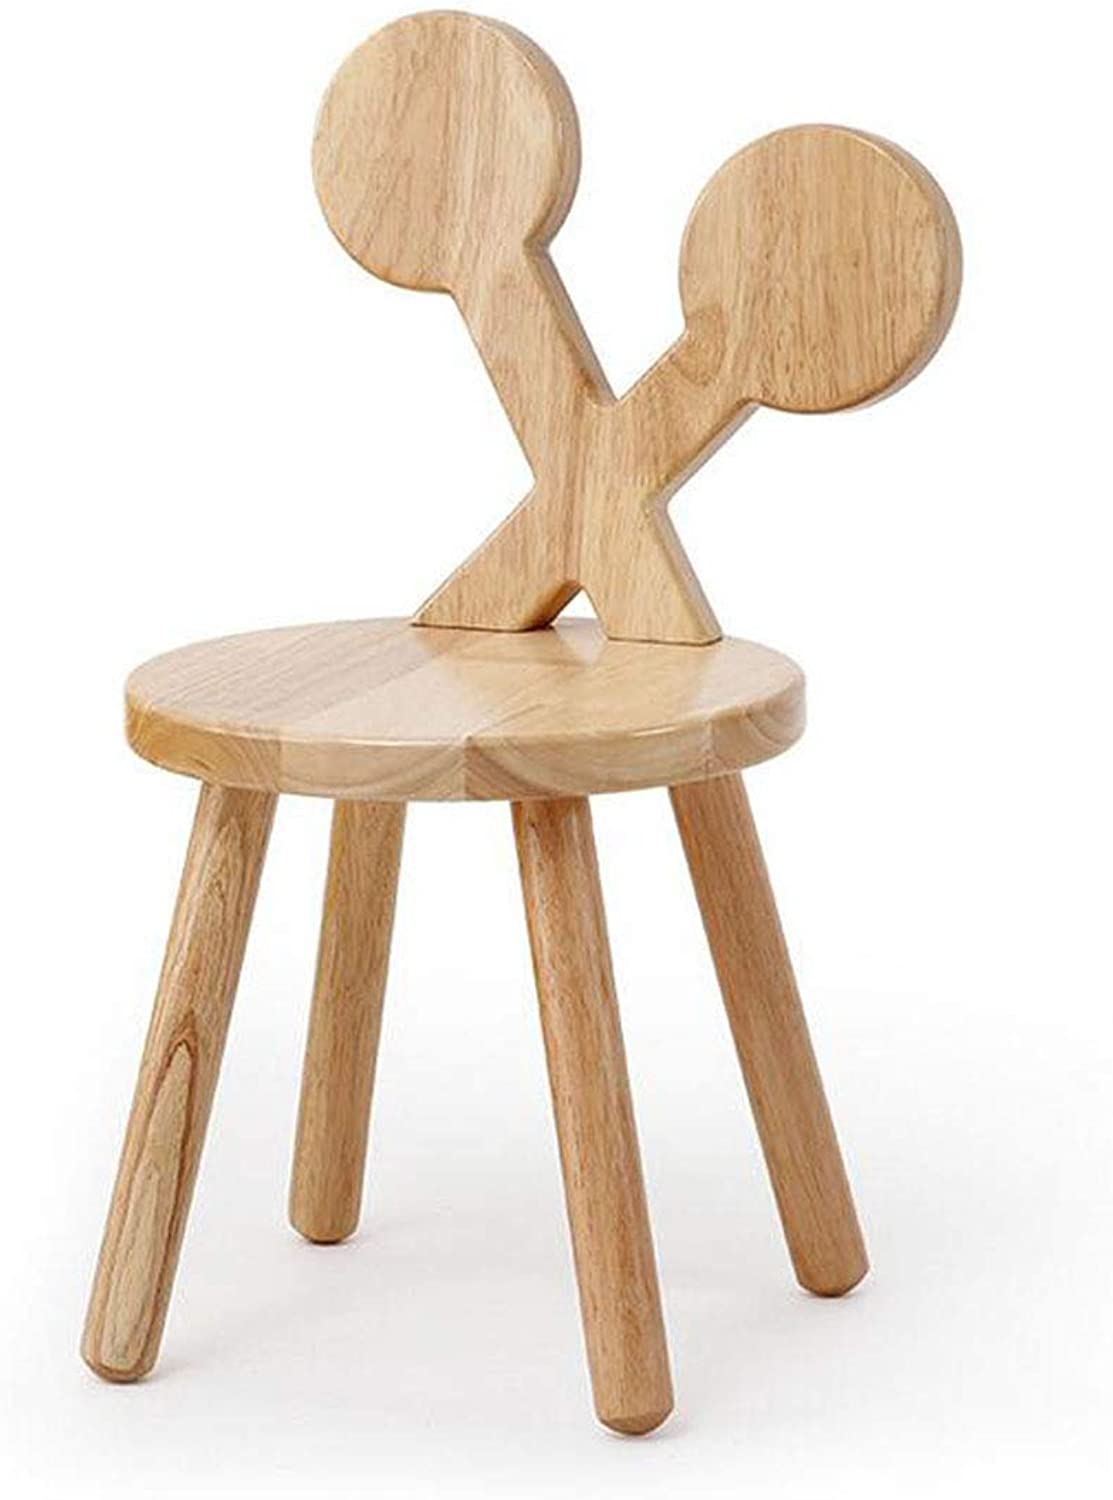 Y & Z Small stool solid wood backrest chair solid wood small bench home cartoon stool change shoe stool baby Chair Stool (color   02)